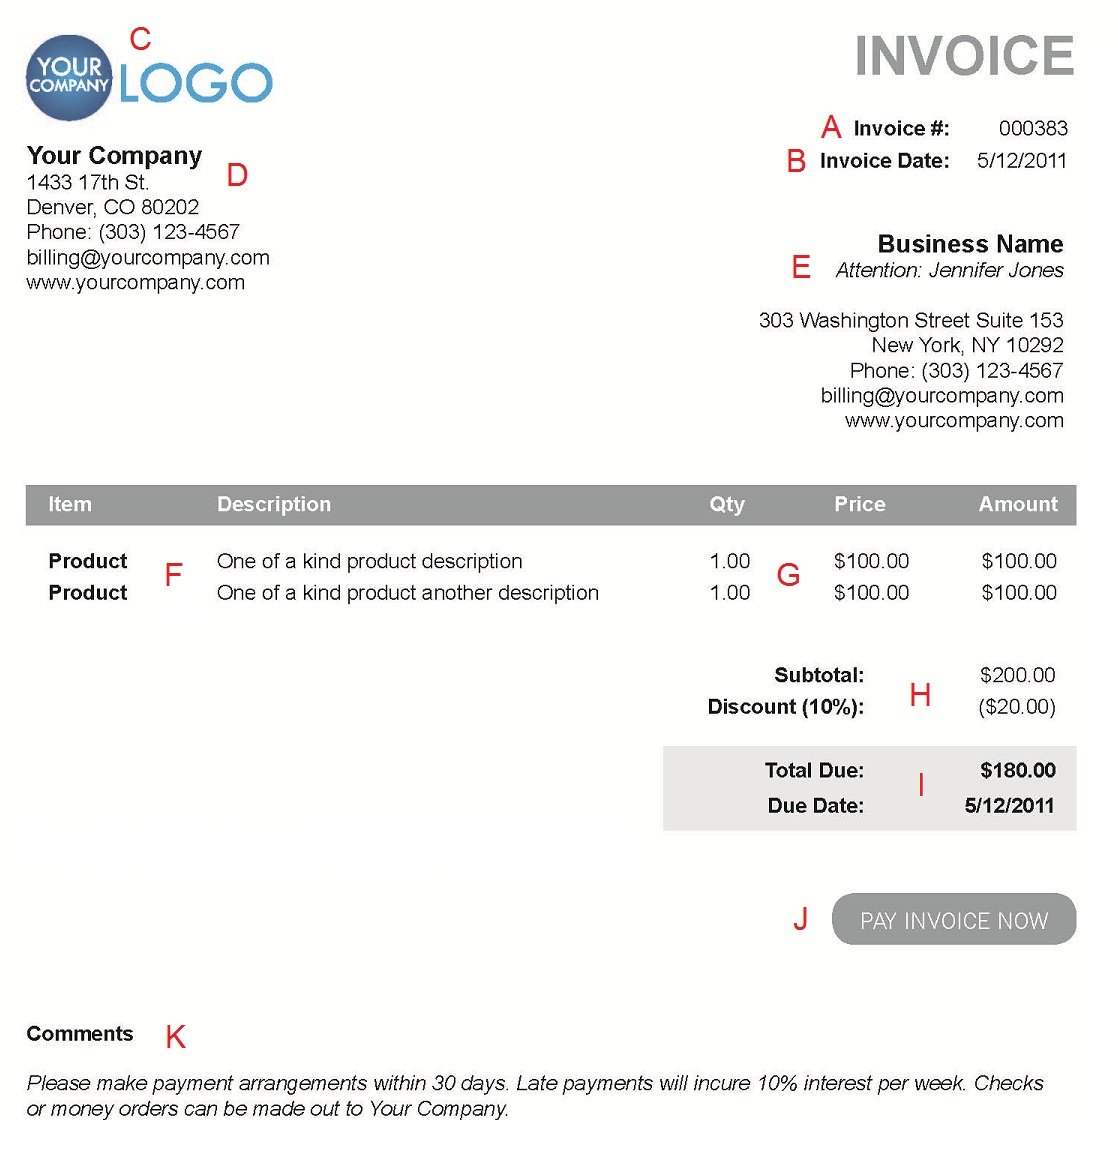 Bringjacobolivierhomeus  Unique The  Different Sections Of An Electronic Payment Invoice With Lovable A  With Delightful Gst Invoice Template Free Also Shipping Invoice Format In Addition Net  Days From Date Of Invoice And Invoice Format In Excel Sheet As Well As Invoice Financing Hsbc Additionally Gst Tax Invoice Template From Paysimplecom With Bringjacobolivierhomeus  Lovable The  Different Sections Of An Electronic Payment Invoice With Delightful A  And Unique Gst Invoice Template Free Also Shipping Invoice Format In Addition Net  Days From Date Of Invoice From Paysimplecom